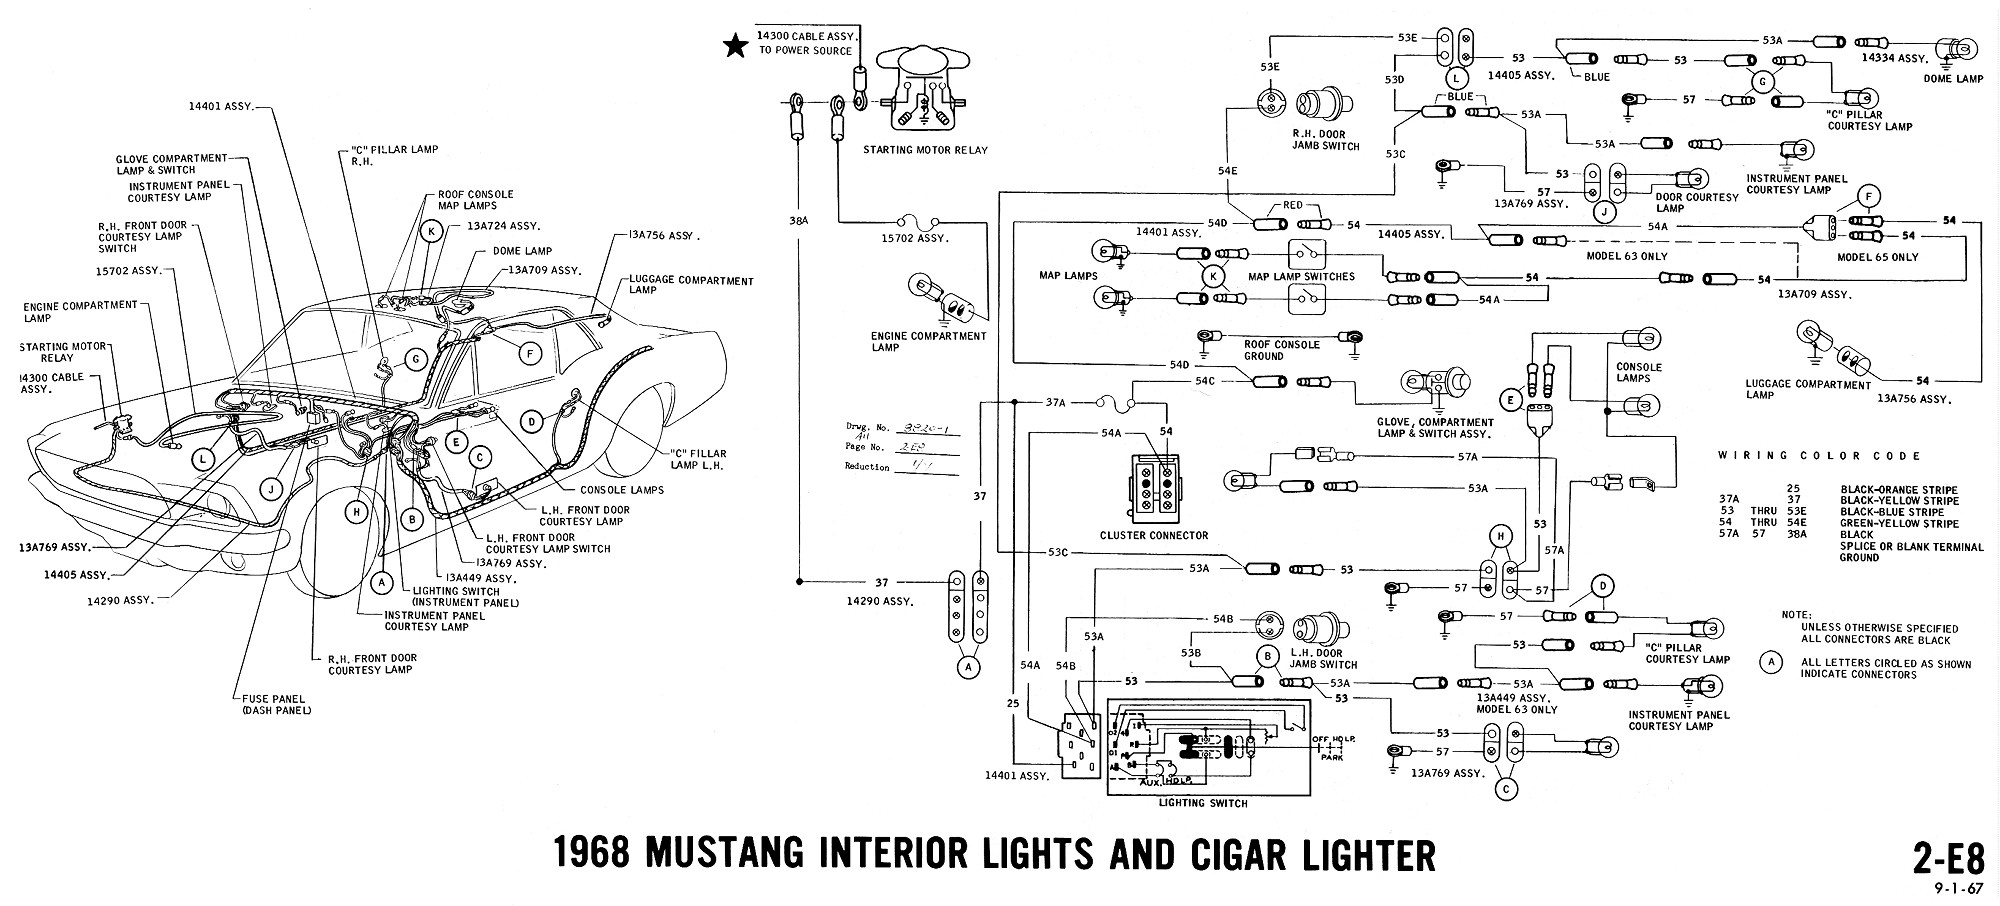 1968 Mustang Wiring Diagram Vacuum Schematics on chevy truck radio wiring diagram